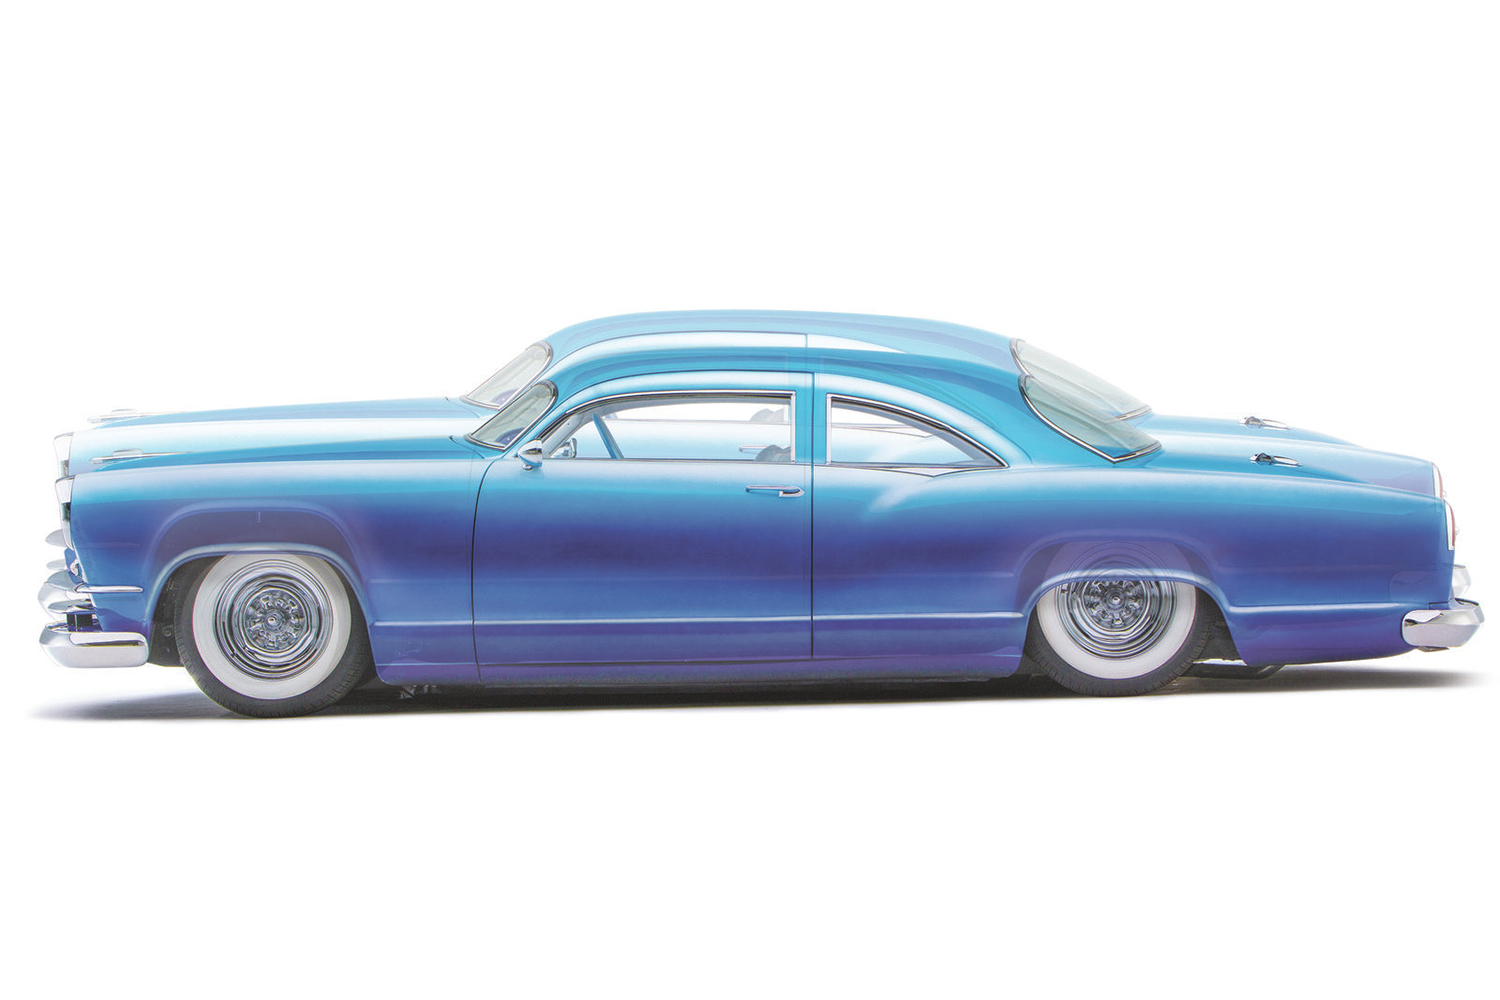 The Kaiser drops it low, thanks to a 1995 Chevy Caprice frame with notched rear and trimmed front sitting on Slam Specialties RE-7 airbags in the front and RE-8 bags in the rear. This photo demonstrates the highest and lowest airbag settings.